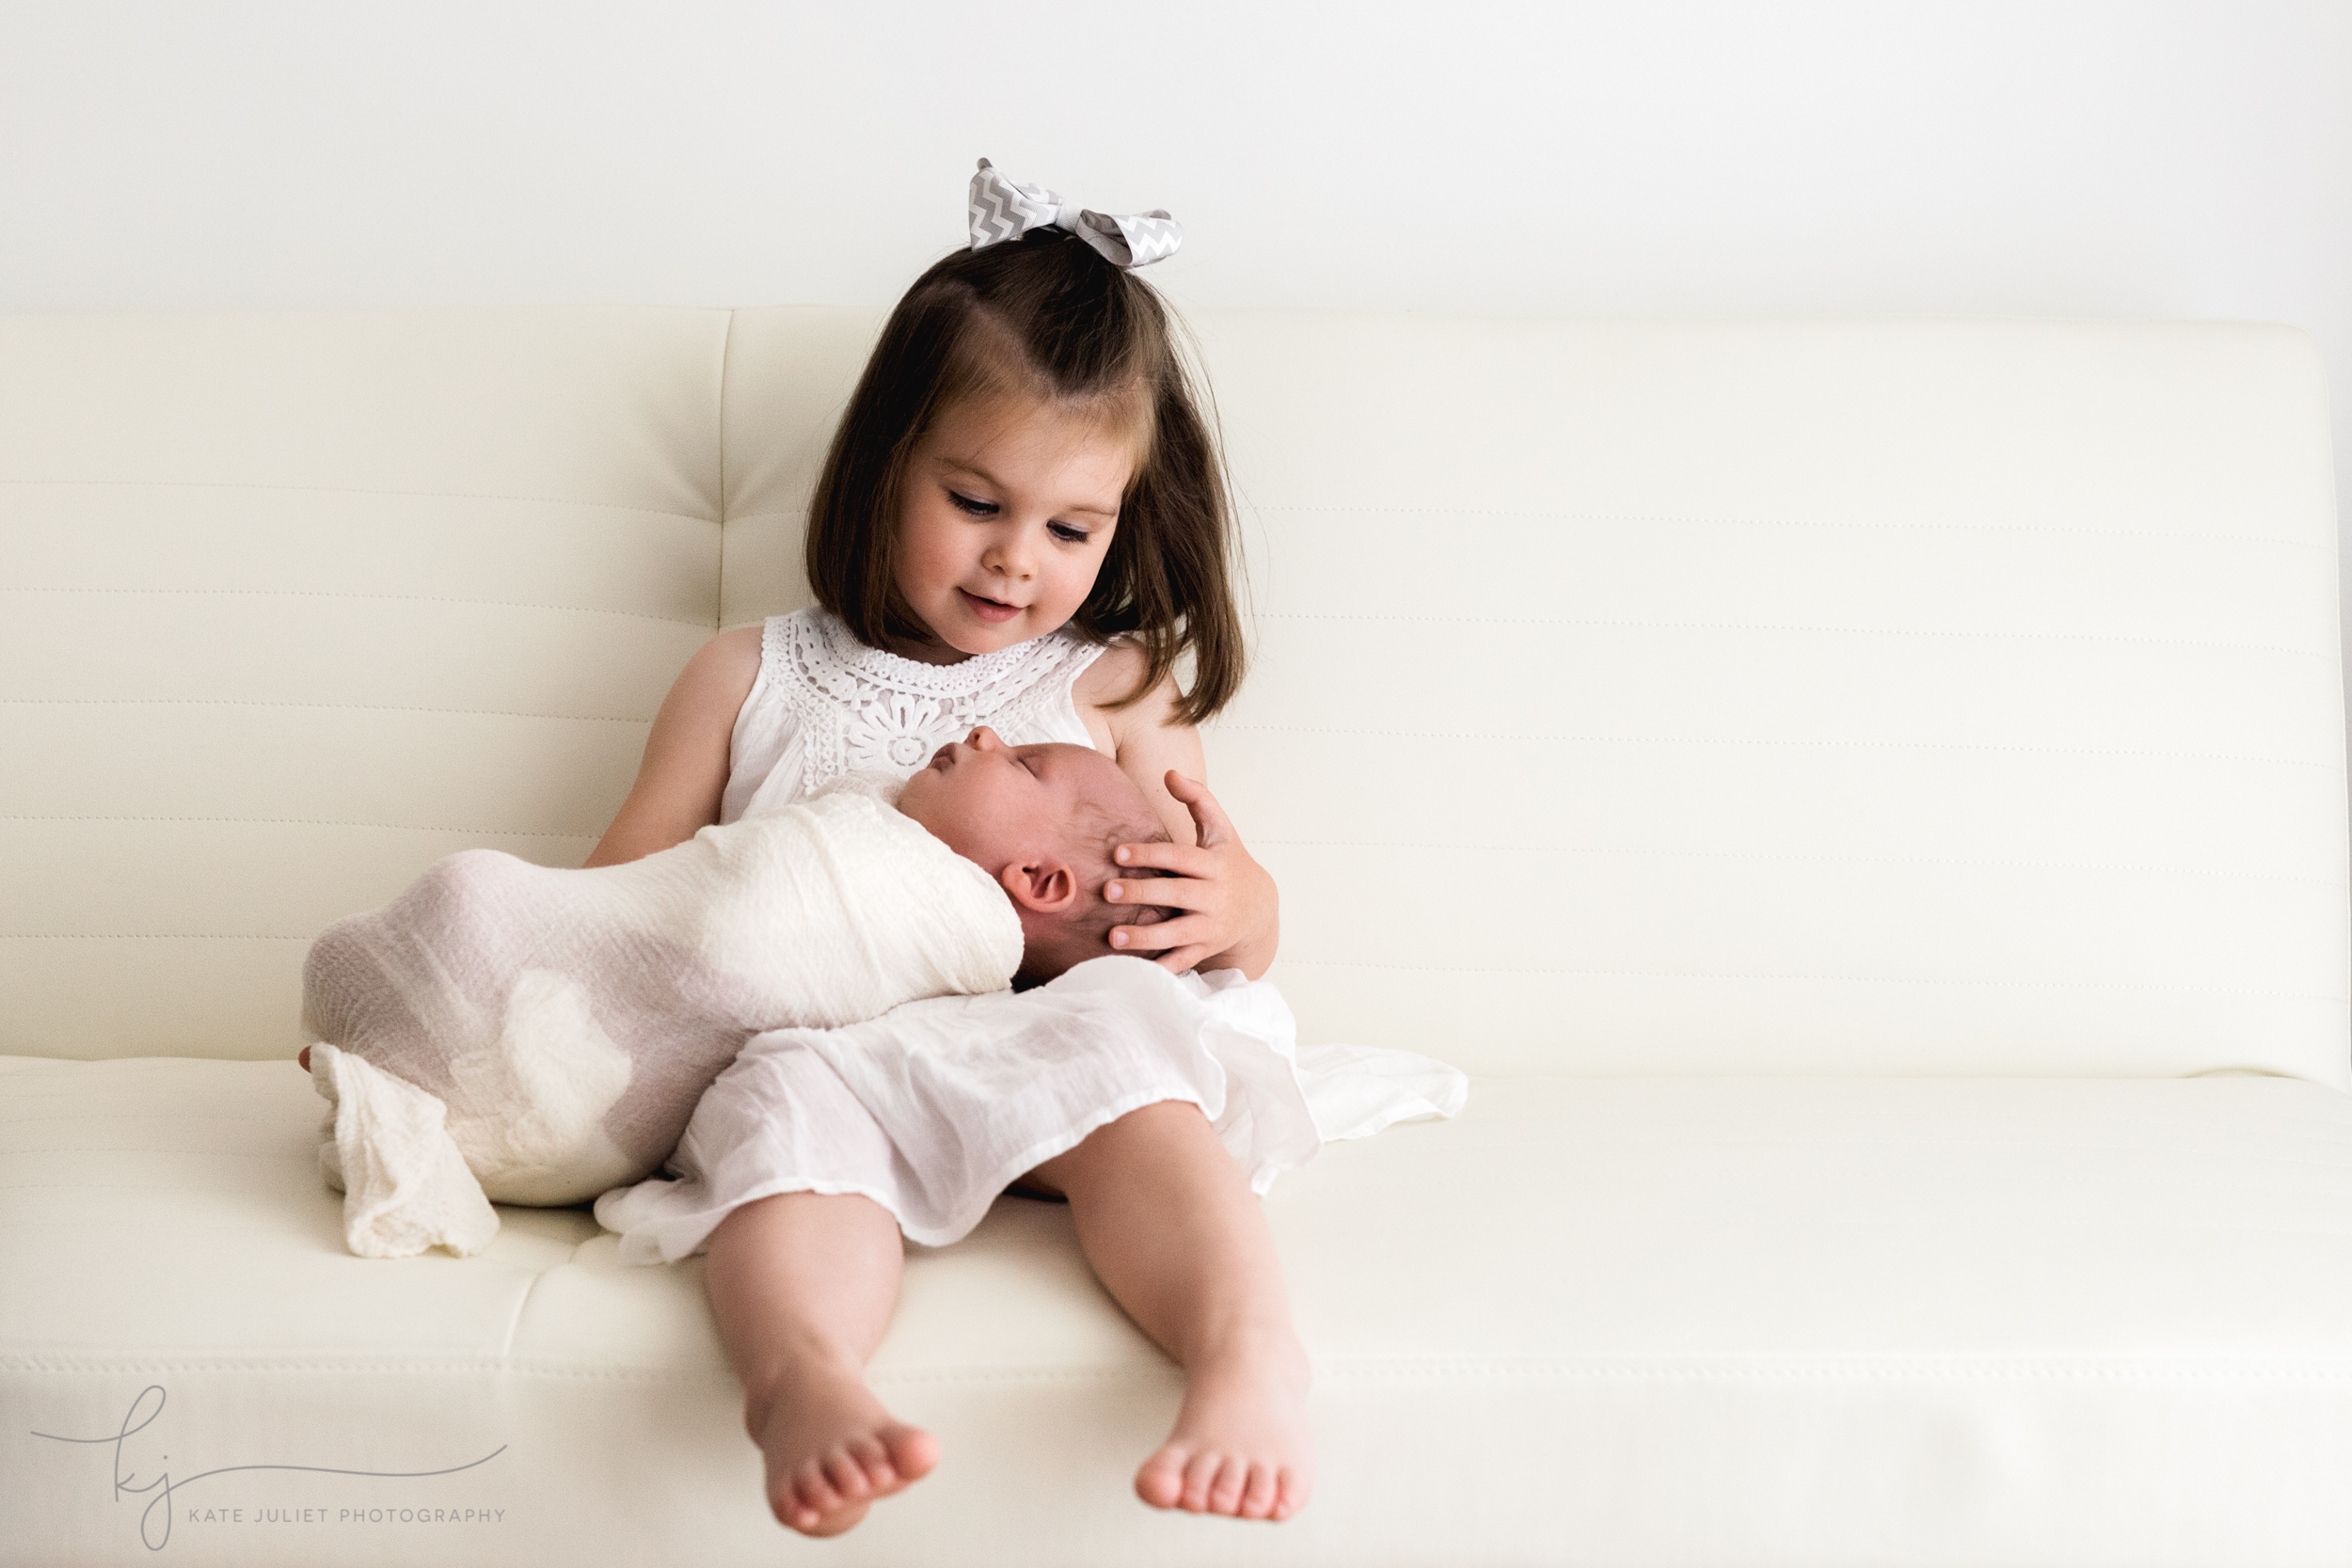 kate_juliet_photography_arlington_newborn_wm-059184.jpg